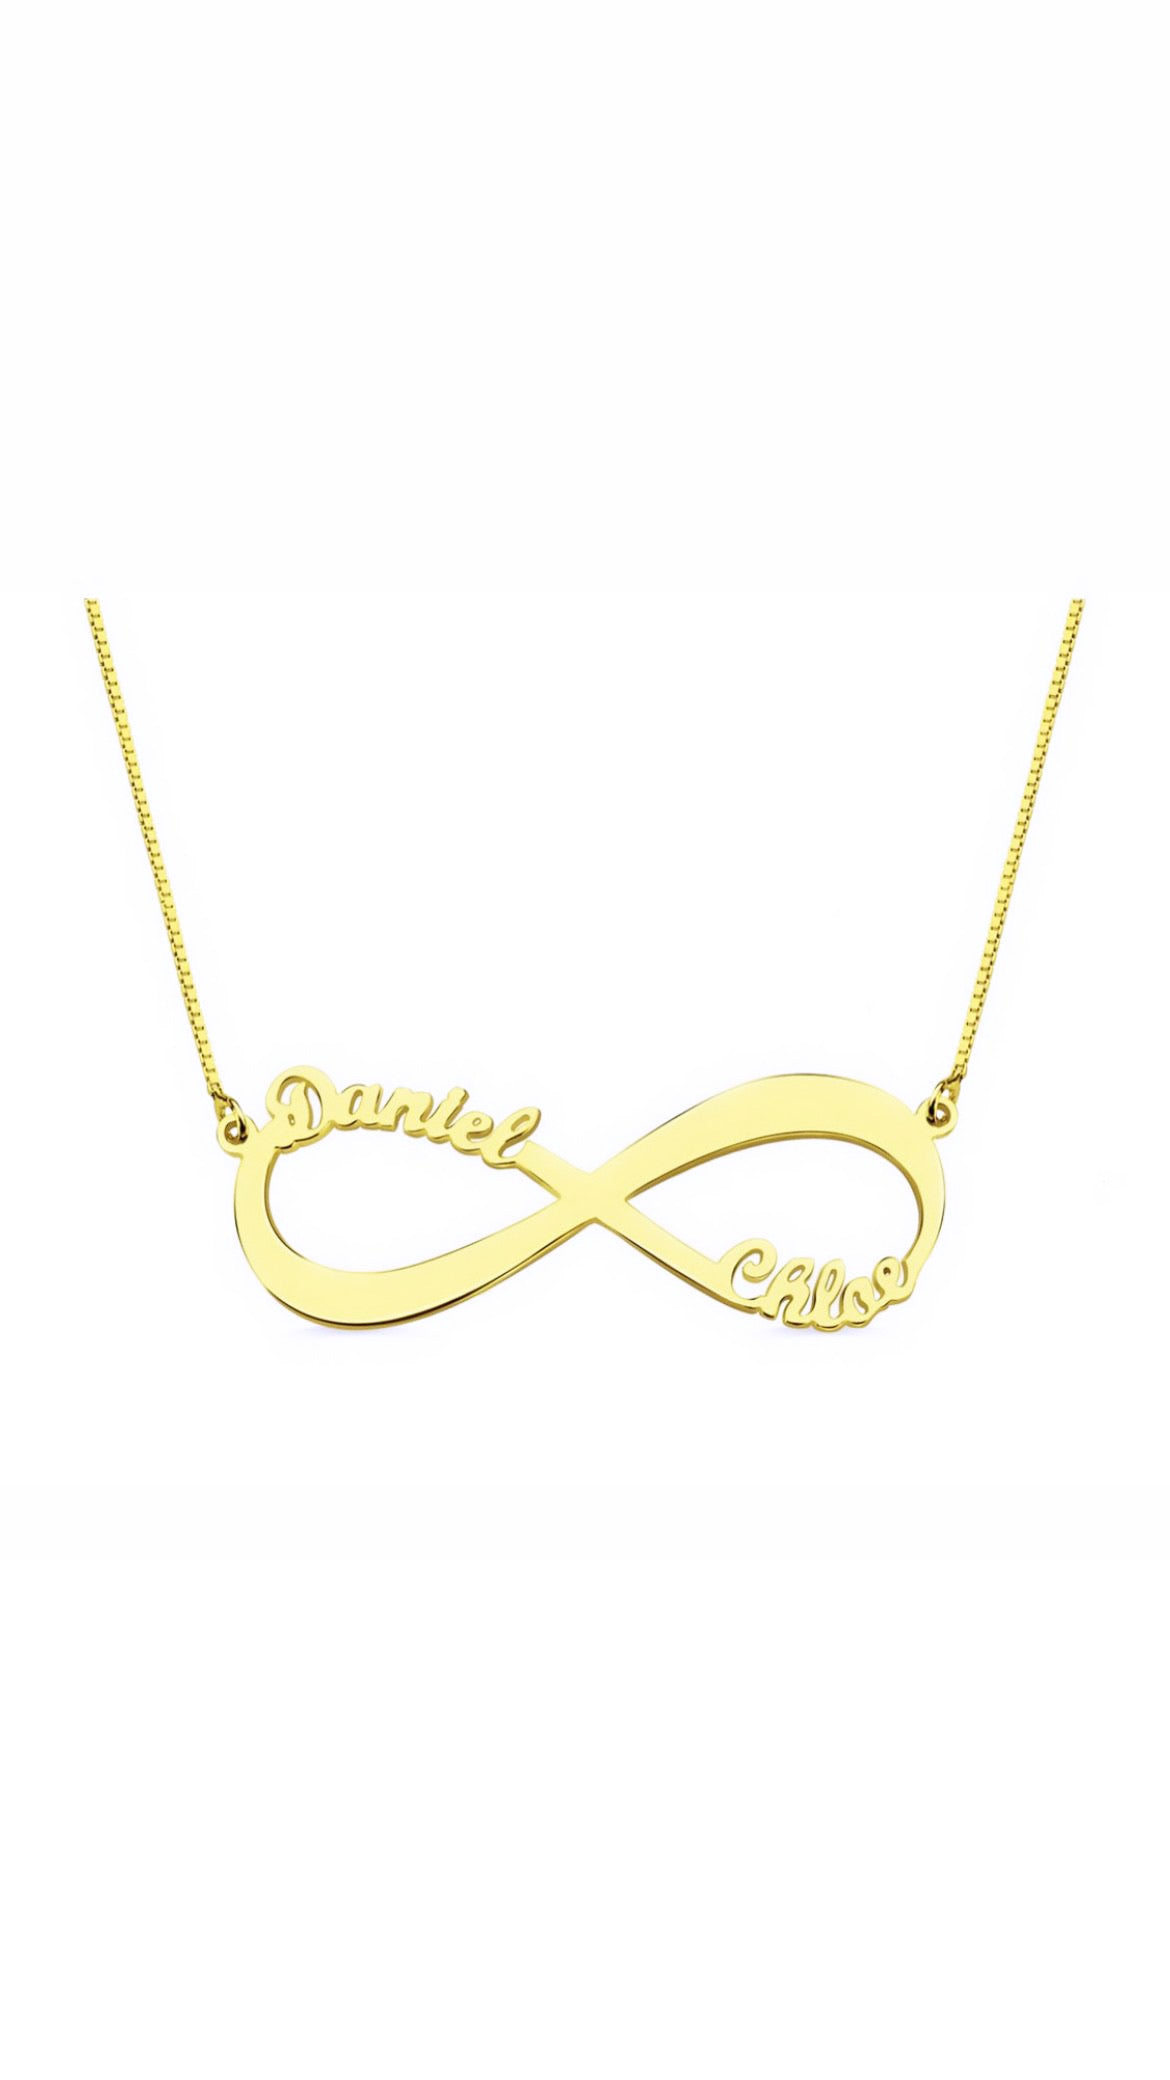 INFINITY PERSONALIZED NECKLACE